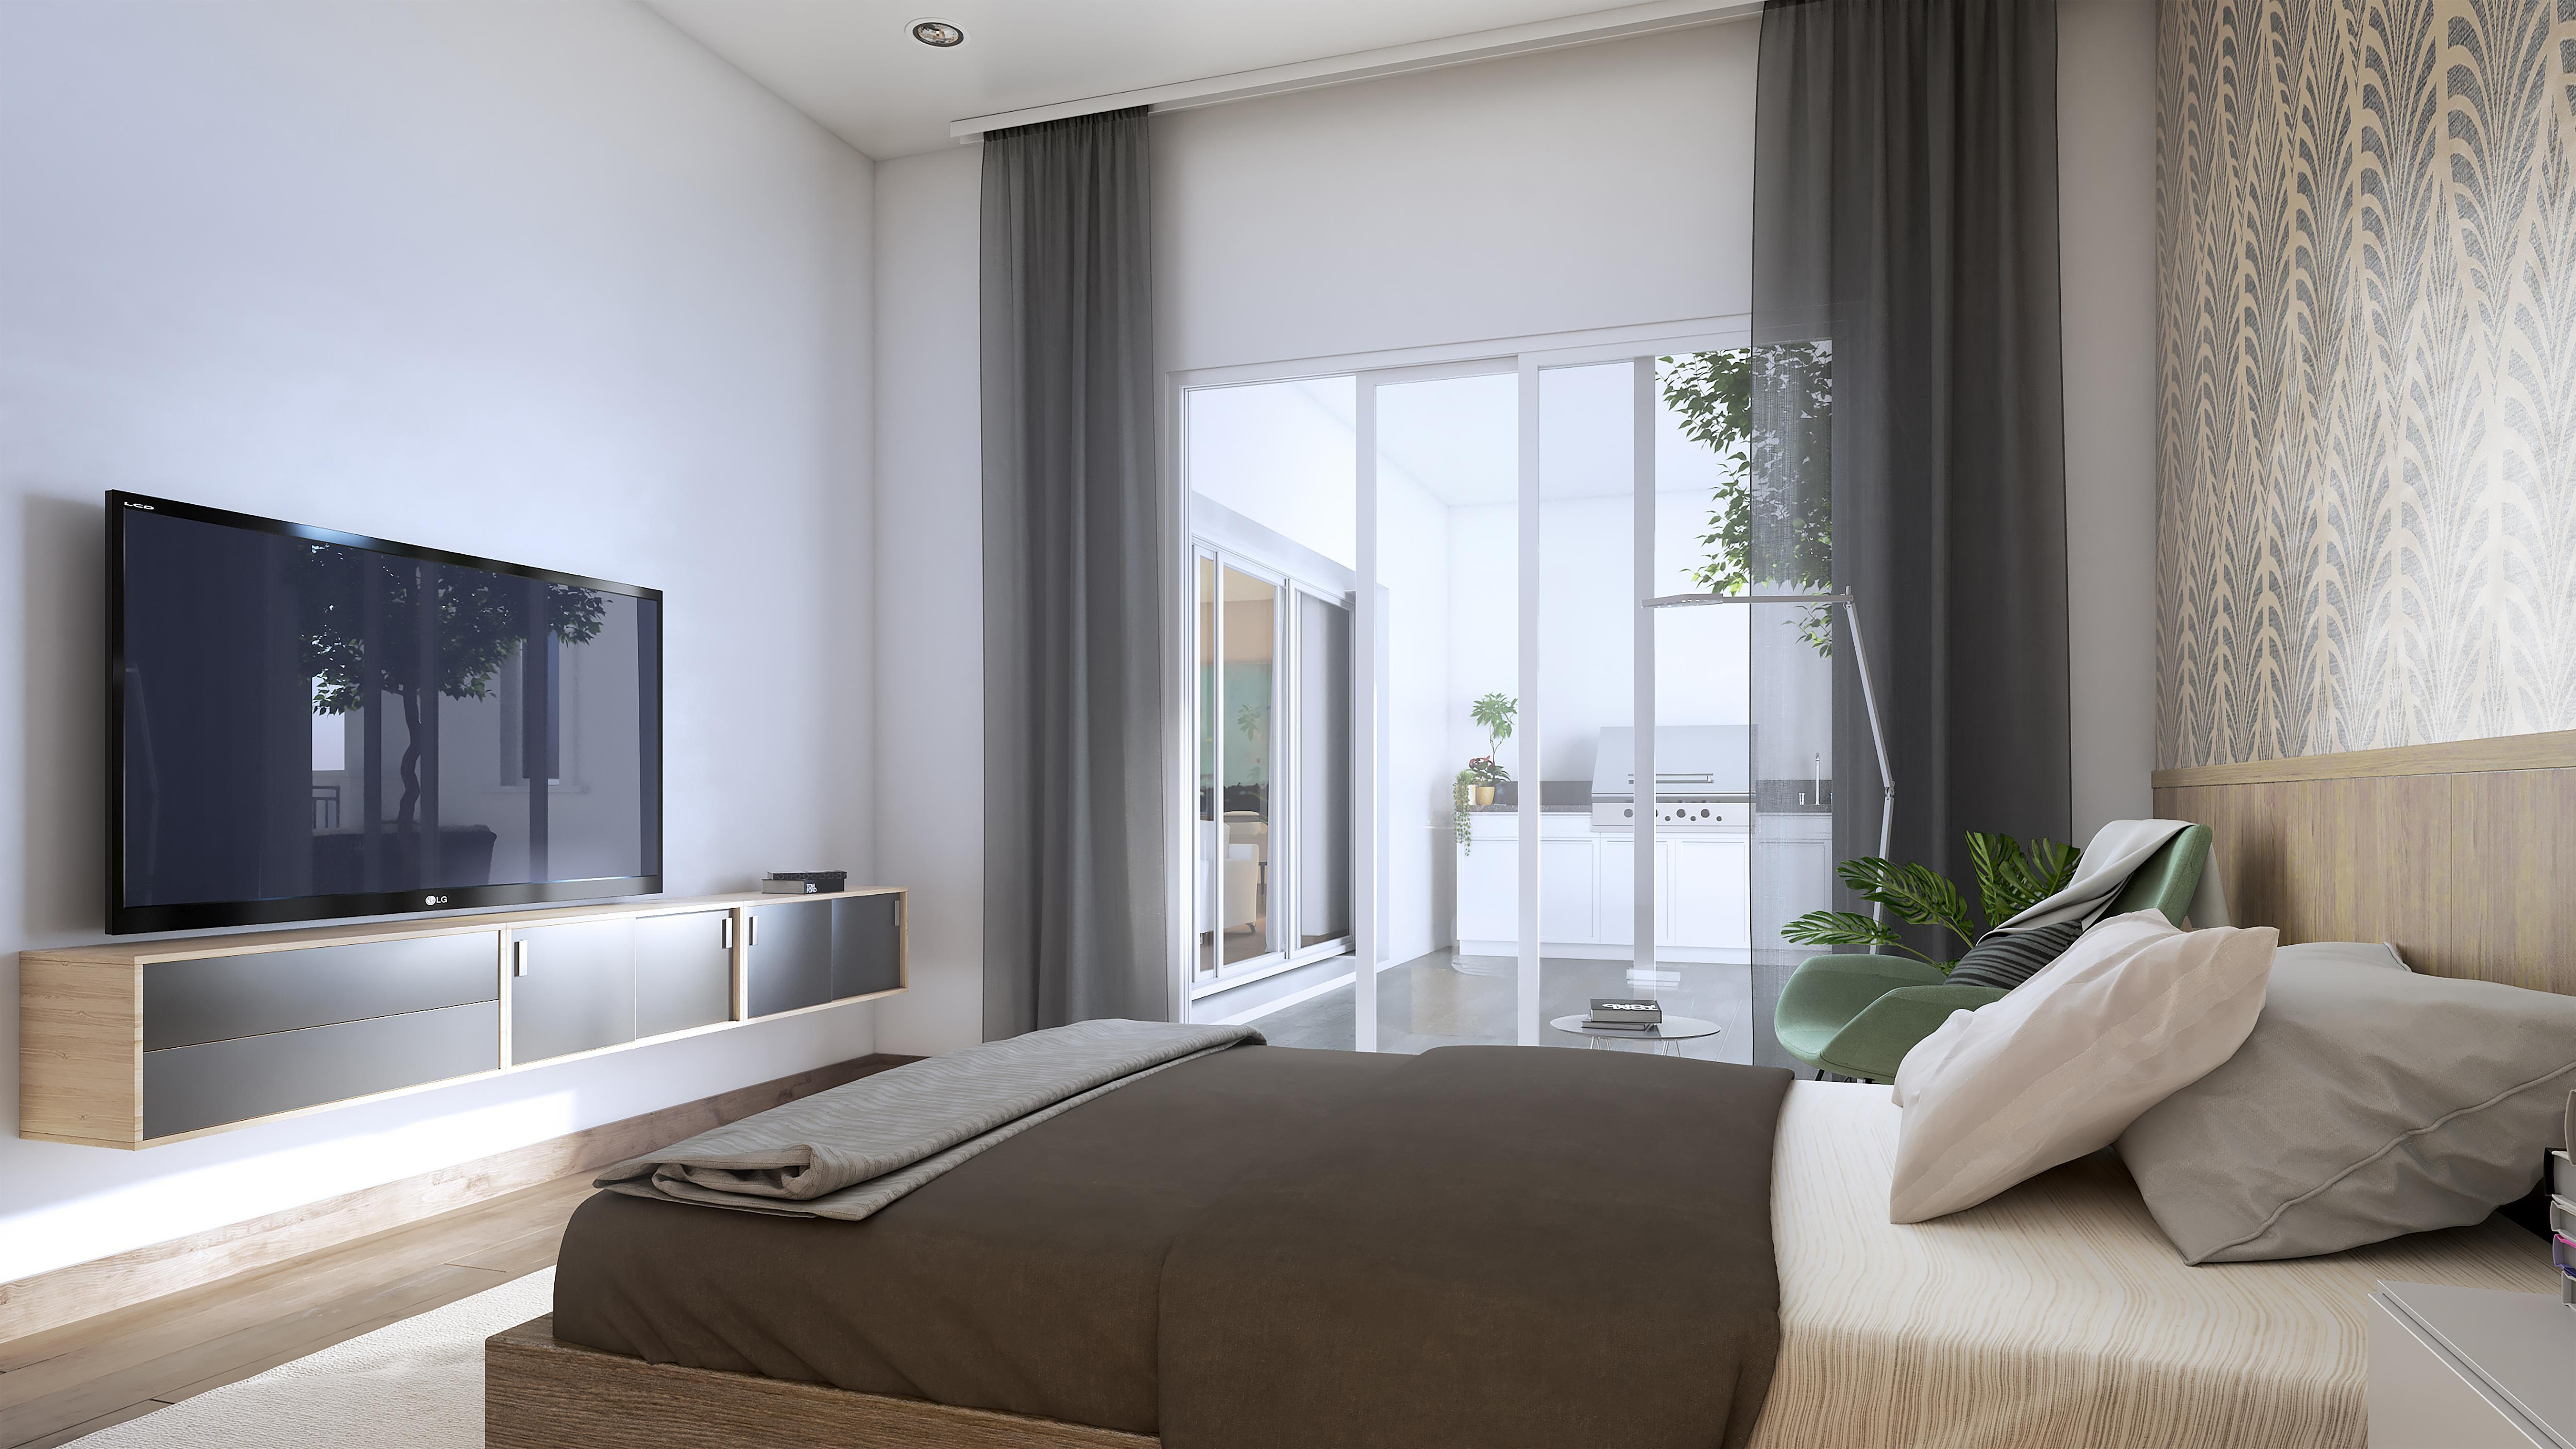 Bedroom featured in the Residence 4 By McKellar McGowan in San Diego, CA